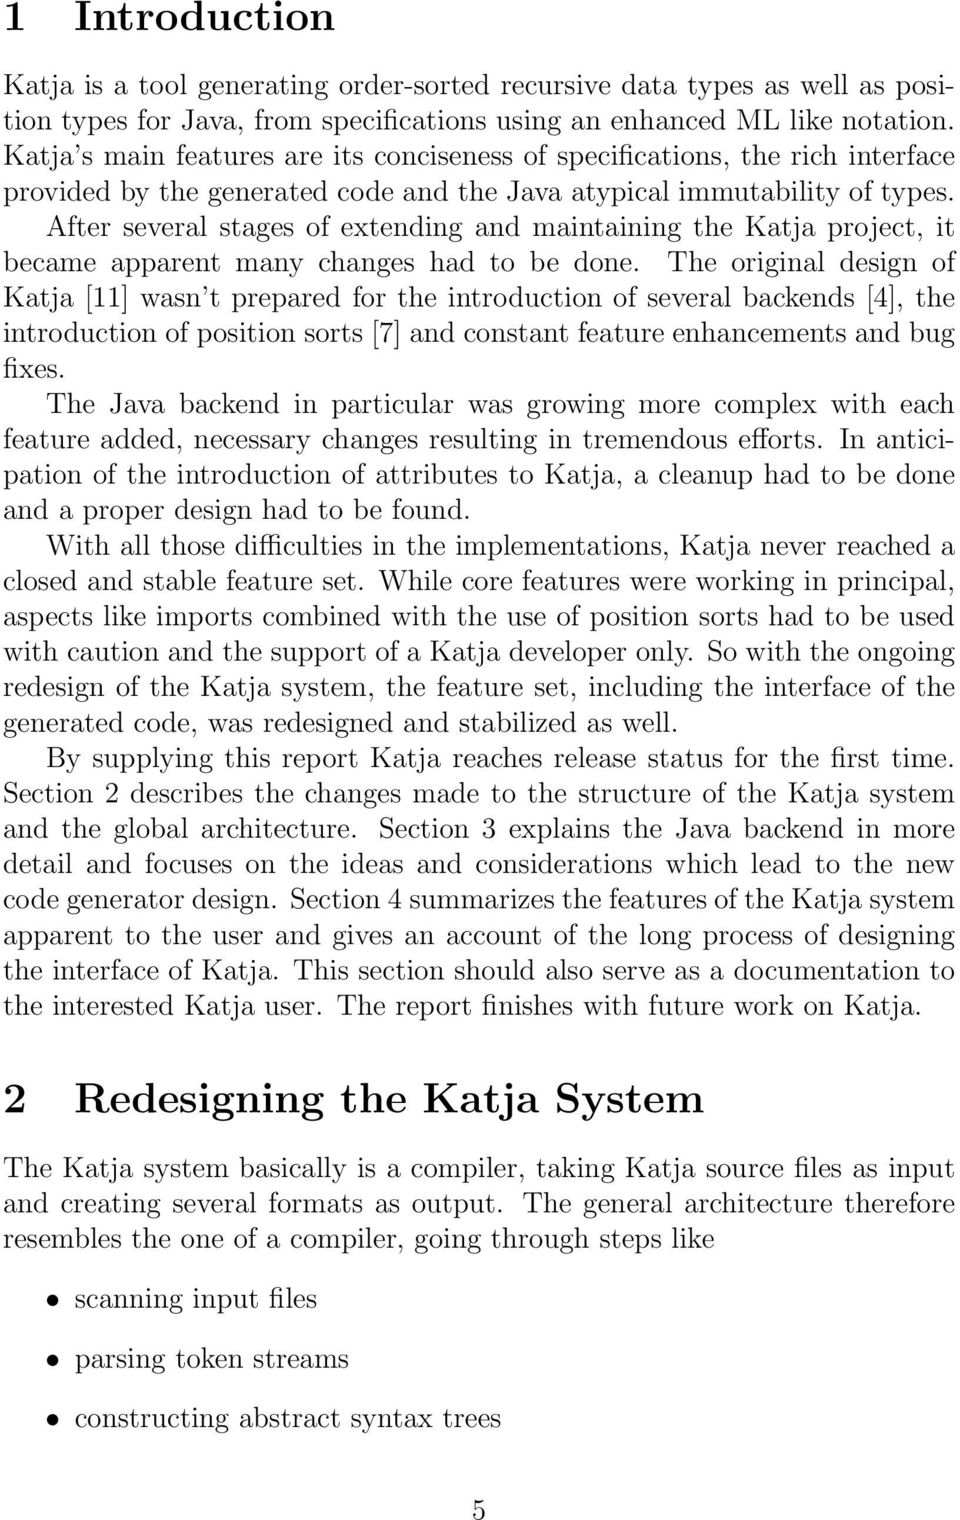 After several stages of extending and maintaining the Katja project, it became apparent many changes had to be done.